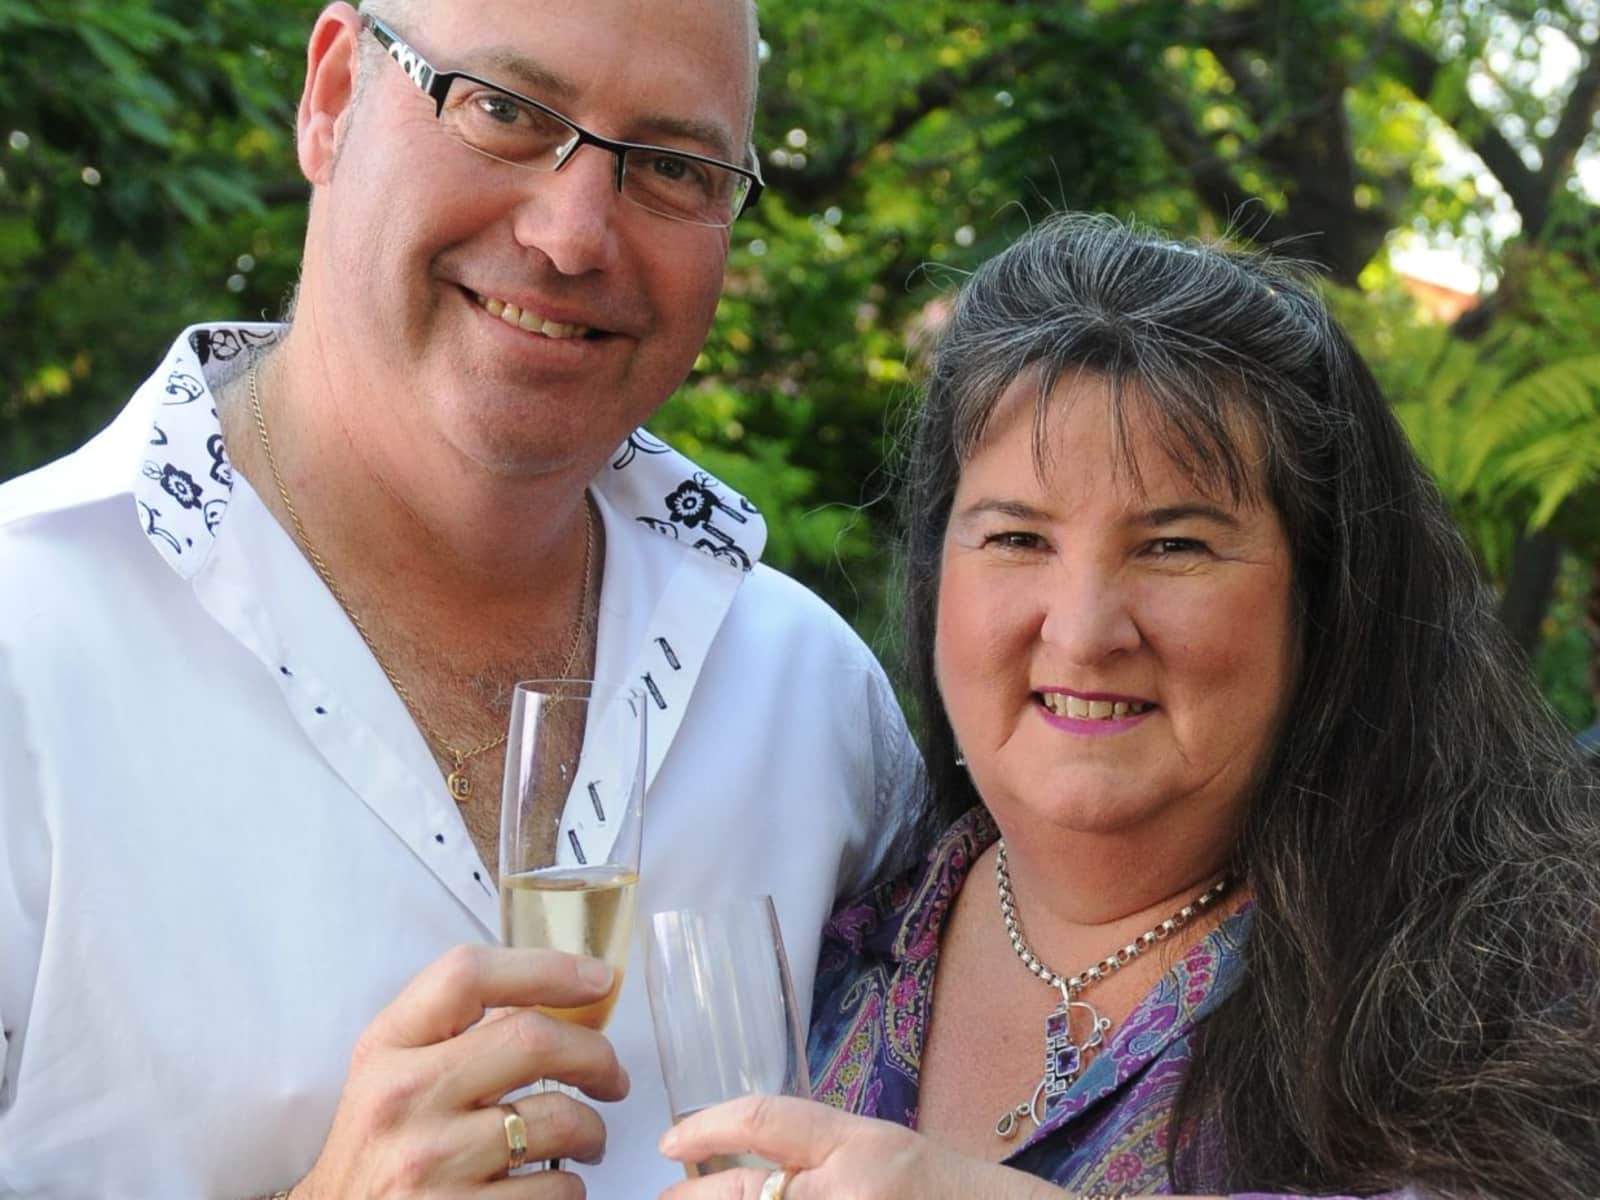 Sandy & Peter from Tamworth, New South Wales, Australia